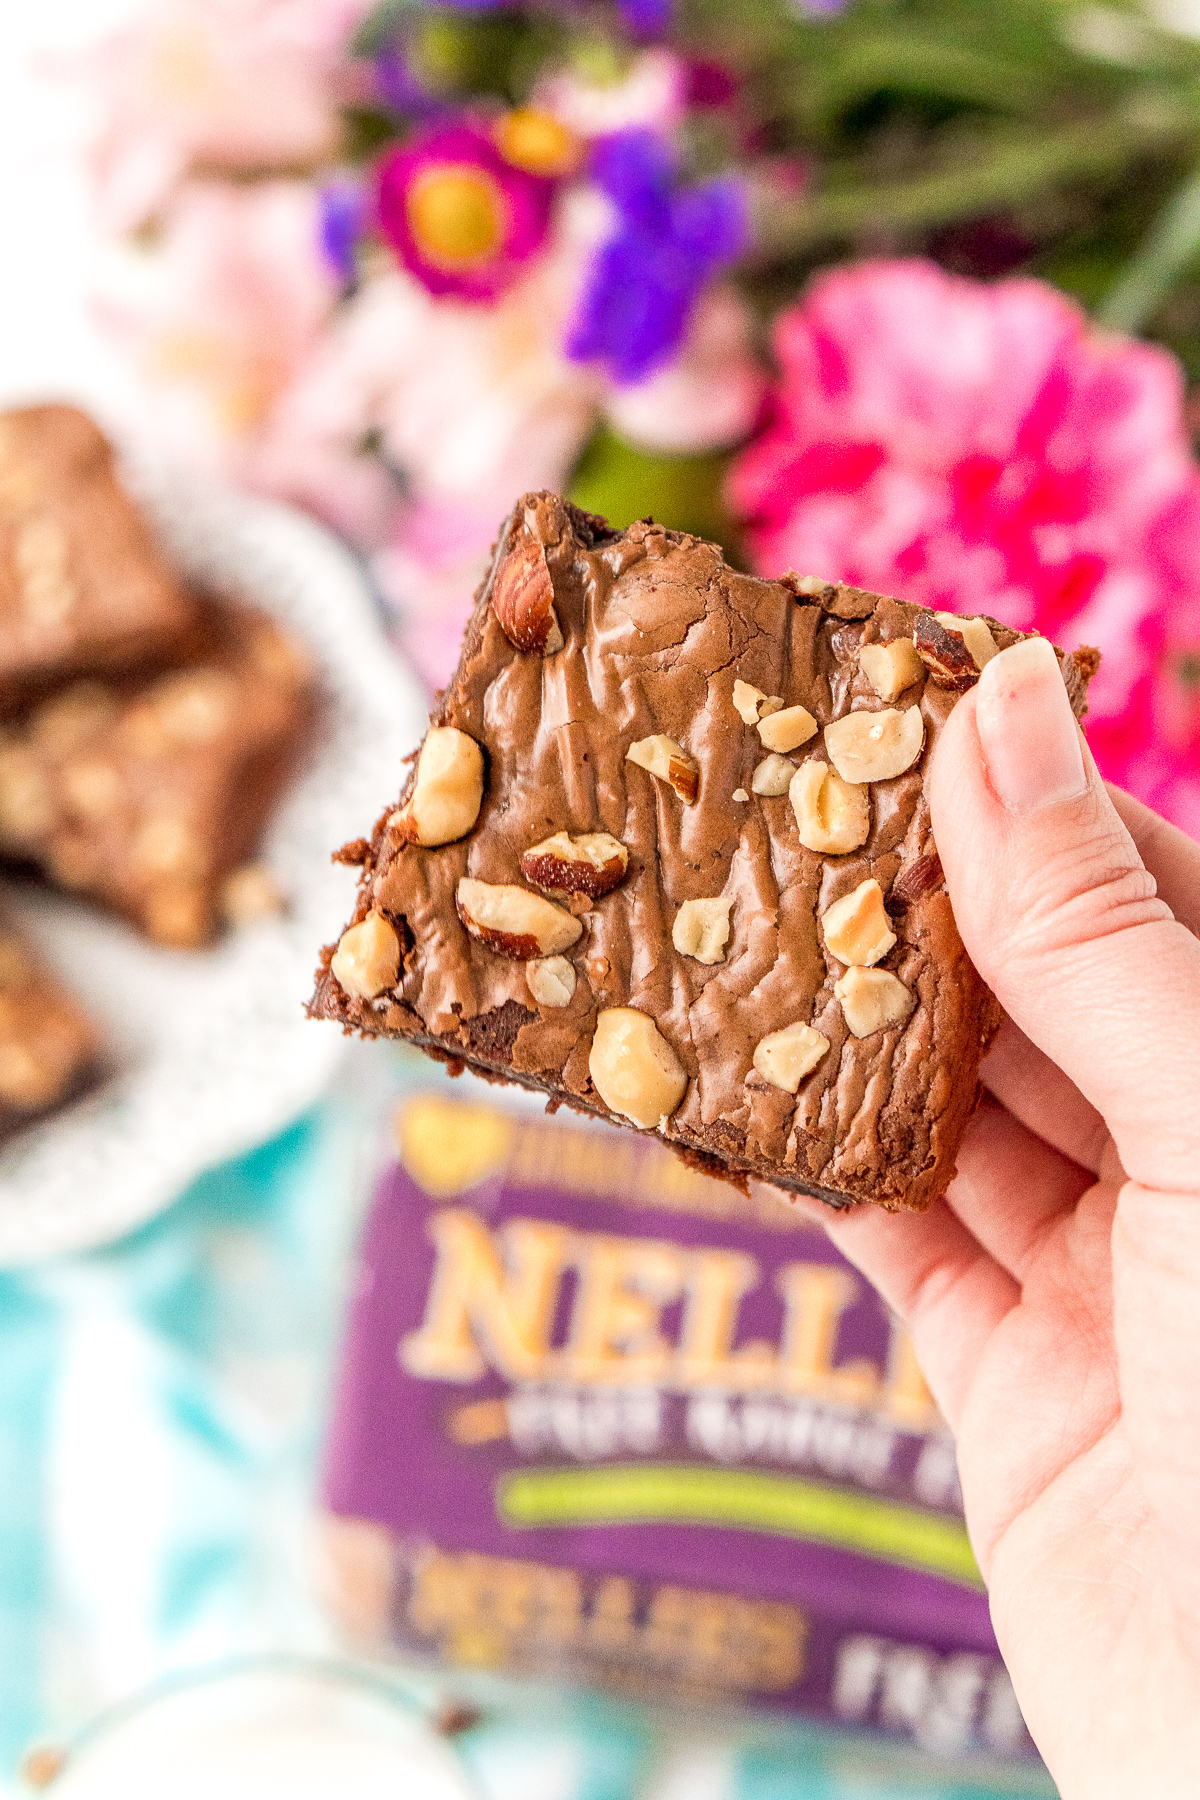 Woman's hand holding a hazelnut brownie. More brownies and flowers in the background.